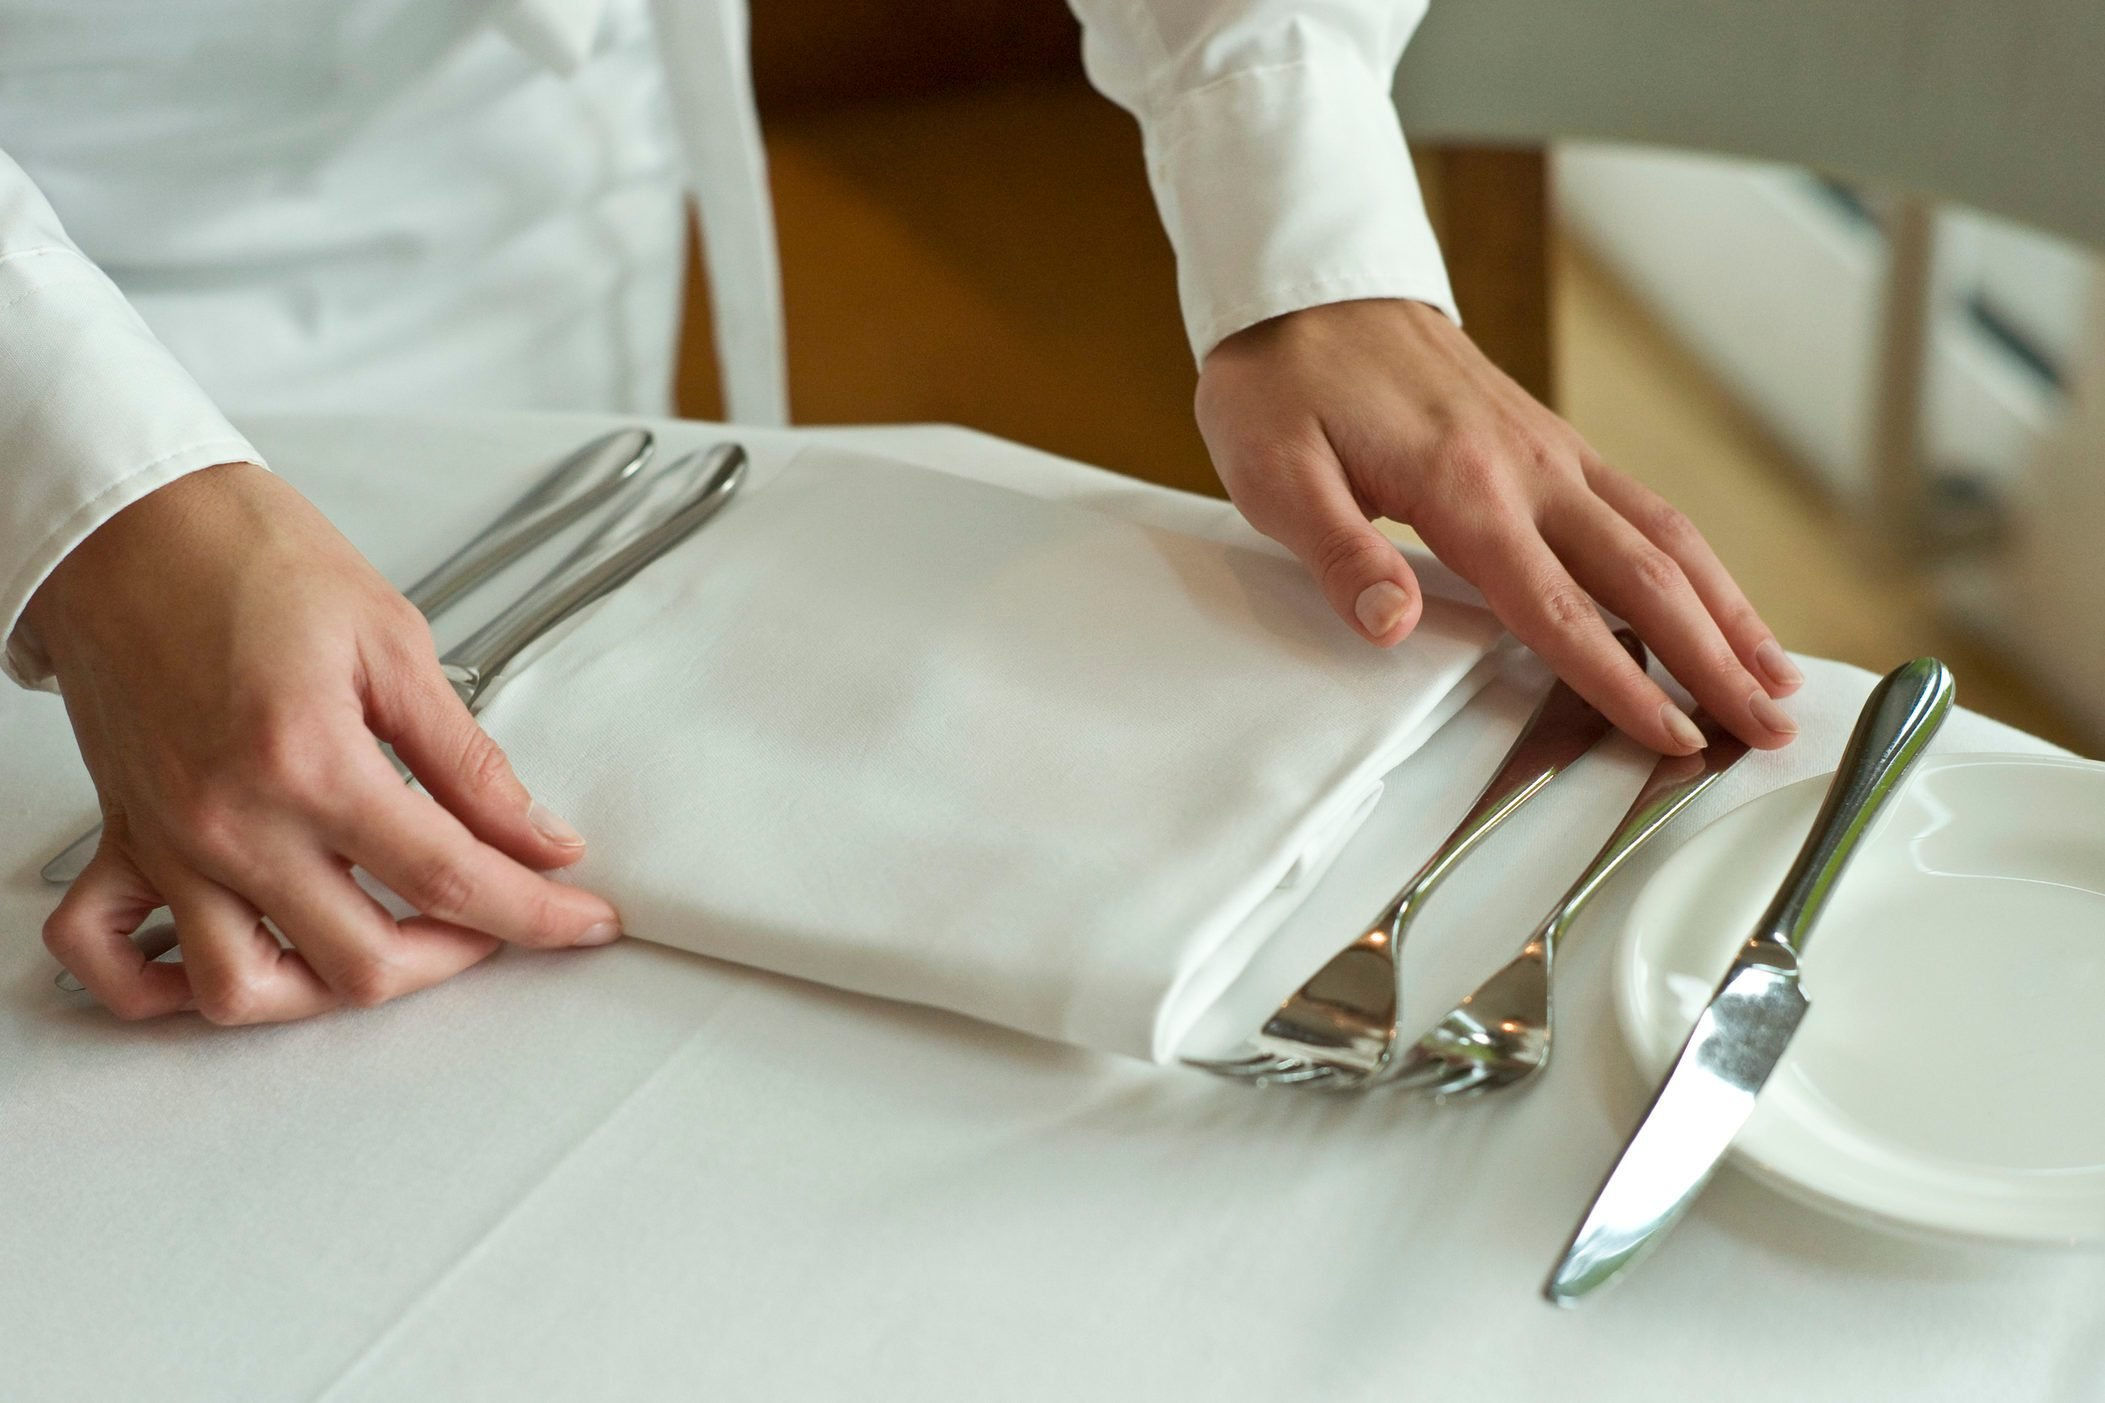 Waitress adjusting table settings in restaurant, mid section